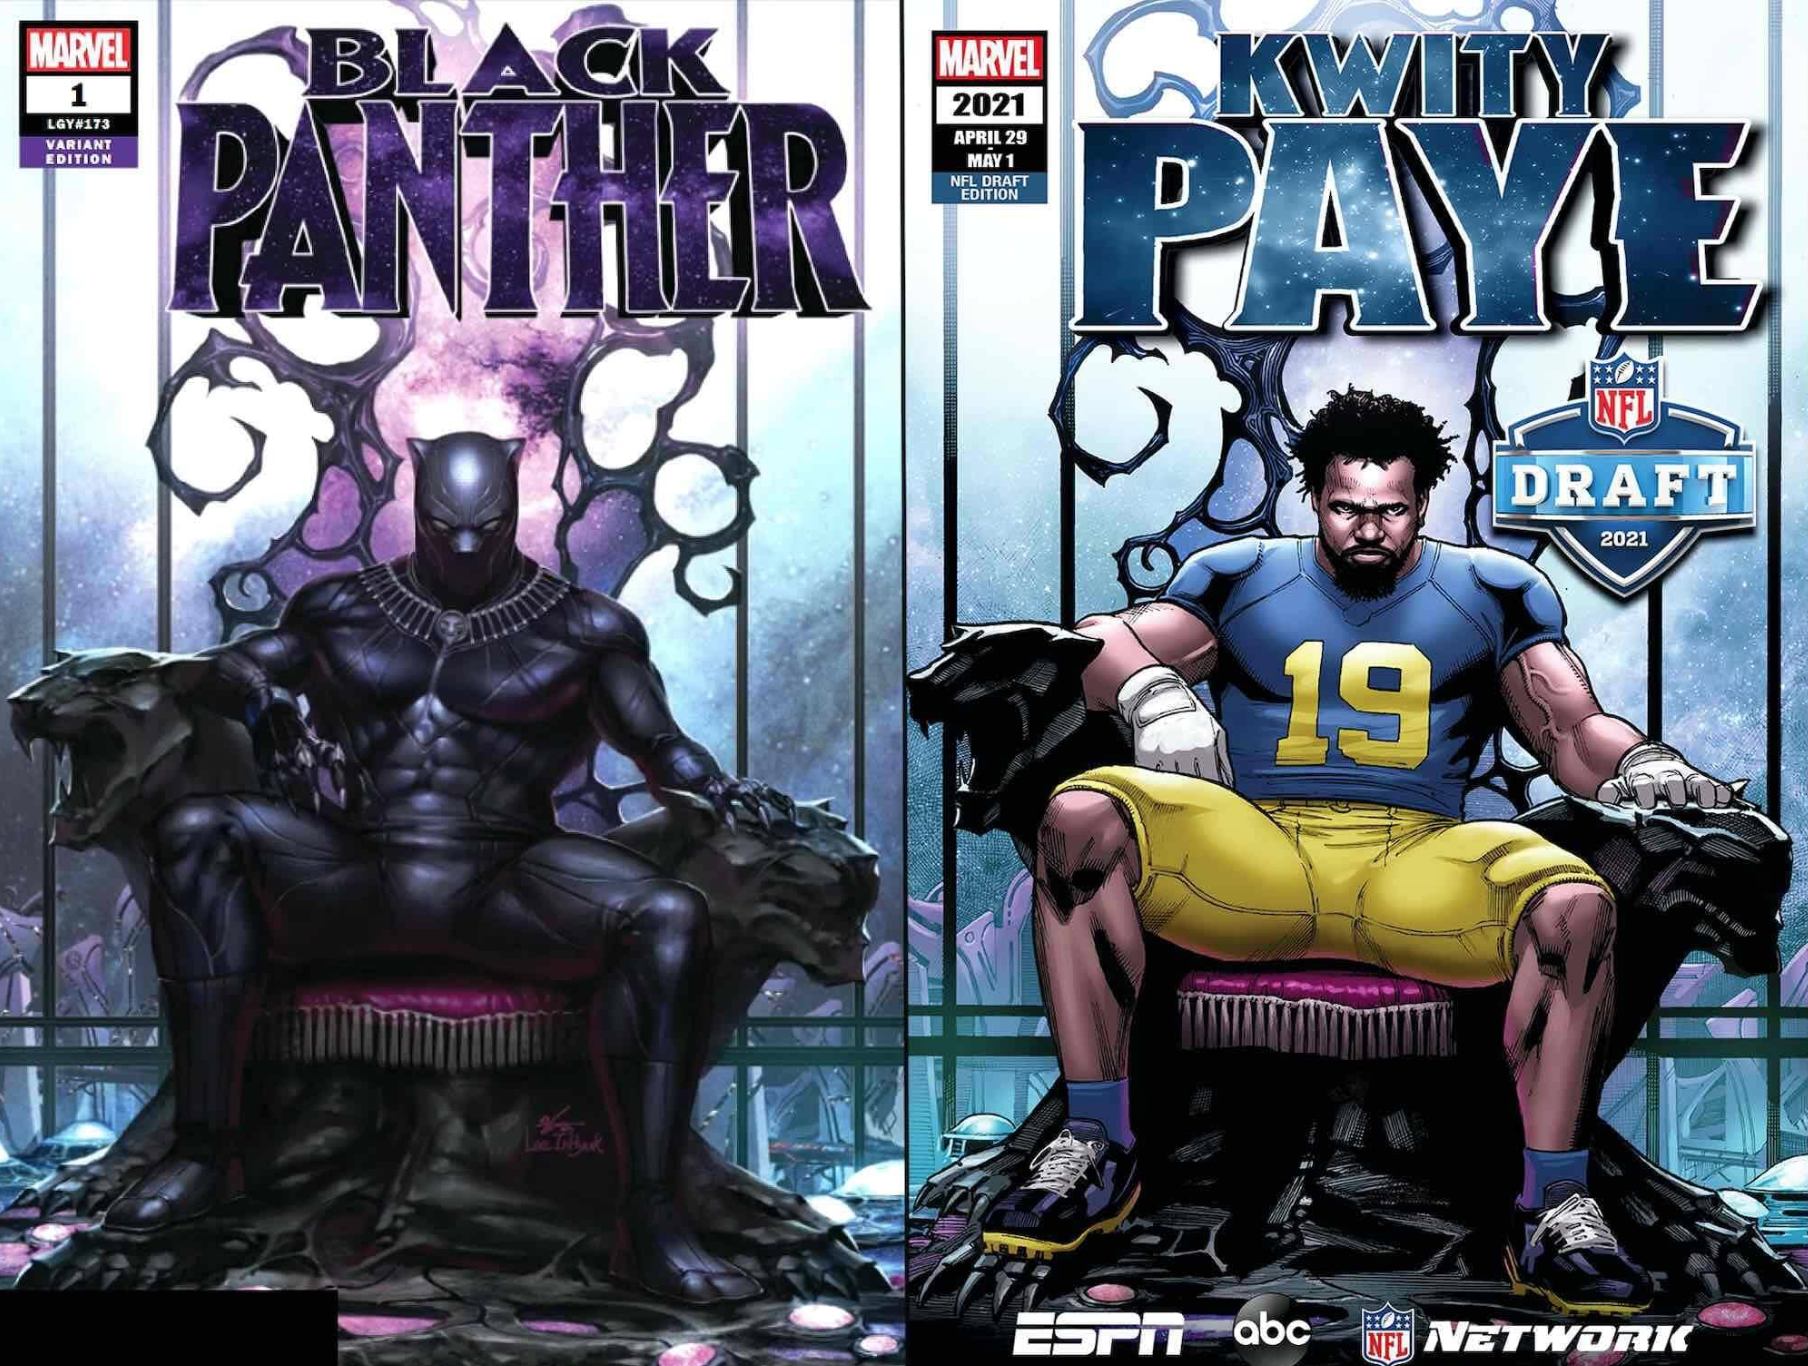 Kwity Paye after BLACK PANTHER #1 by InHyuk Lee